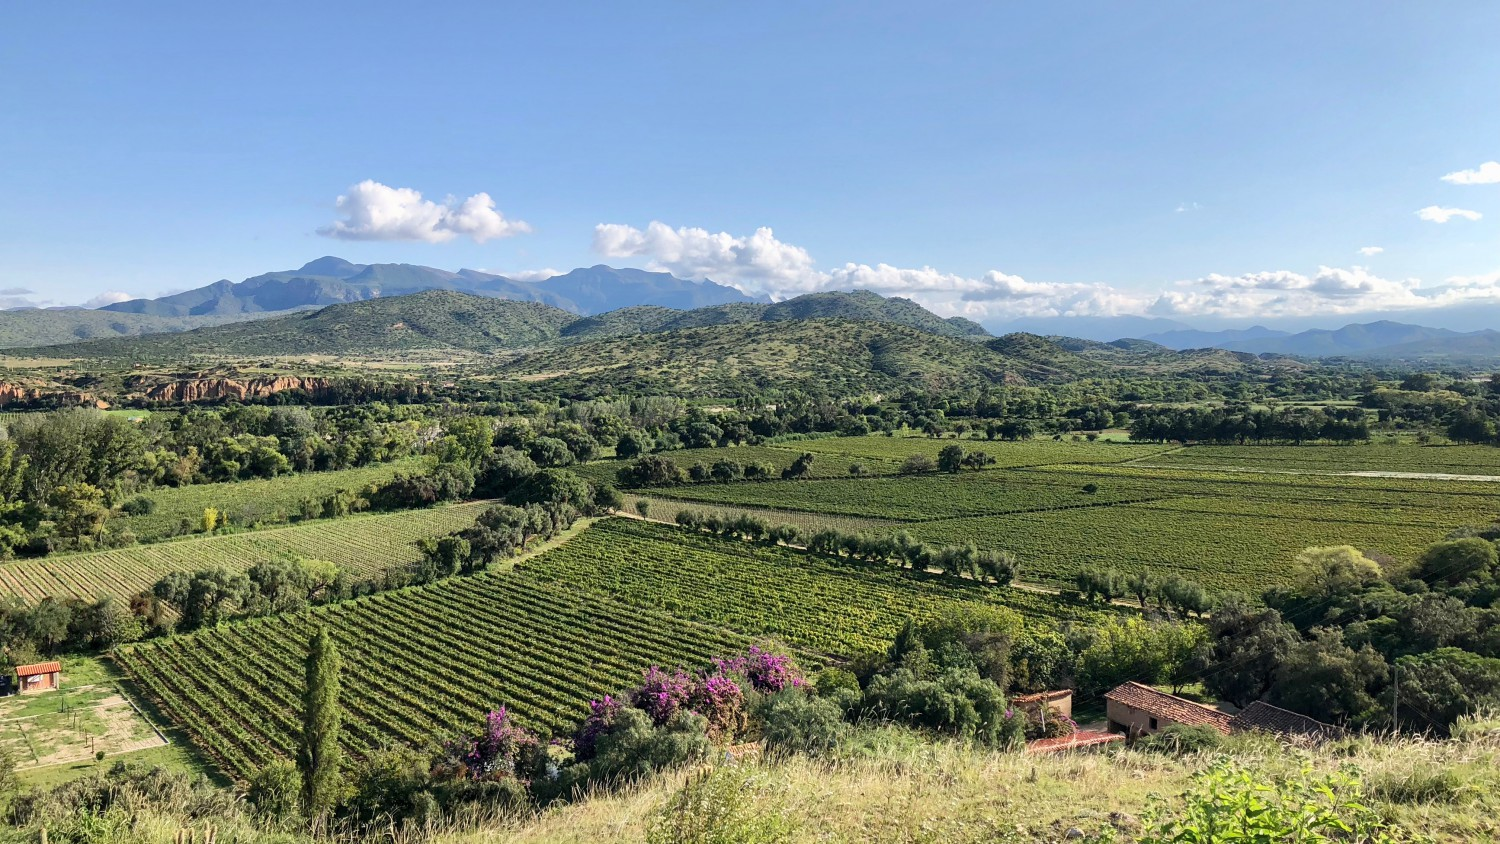 The semi-dessert climate of Tarija is beautiful, but challenging due to the high levels of UV exposure at altitudes of over 6,000 feet.